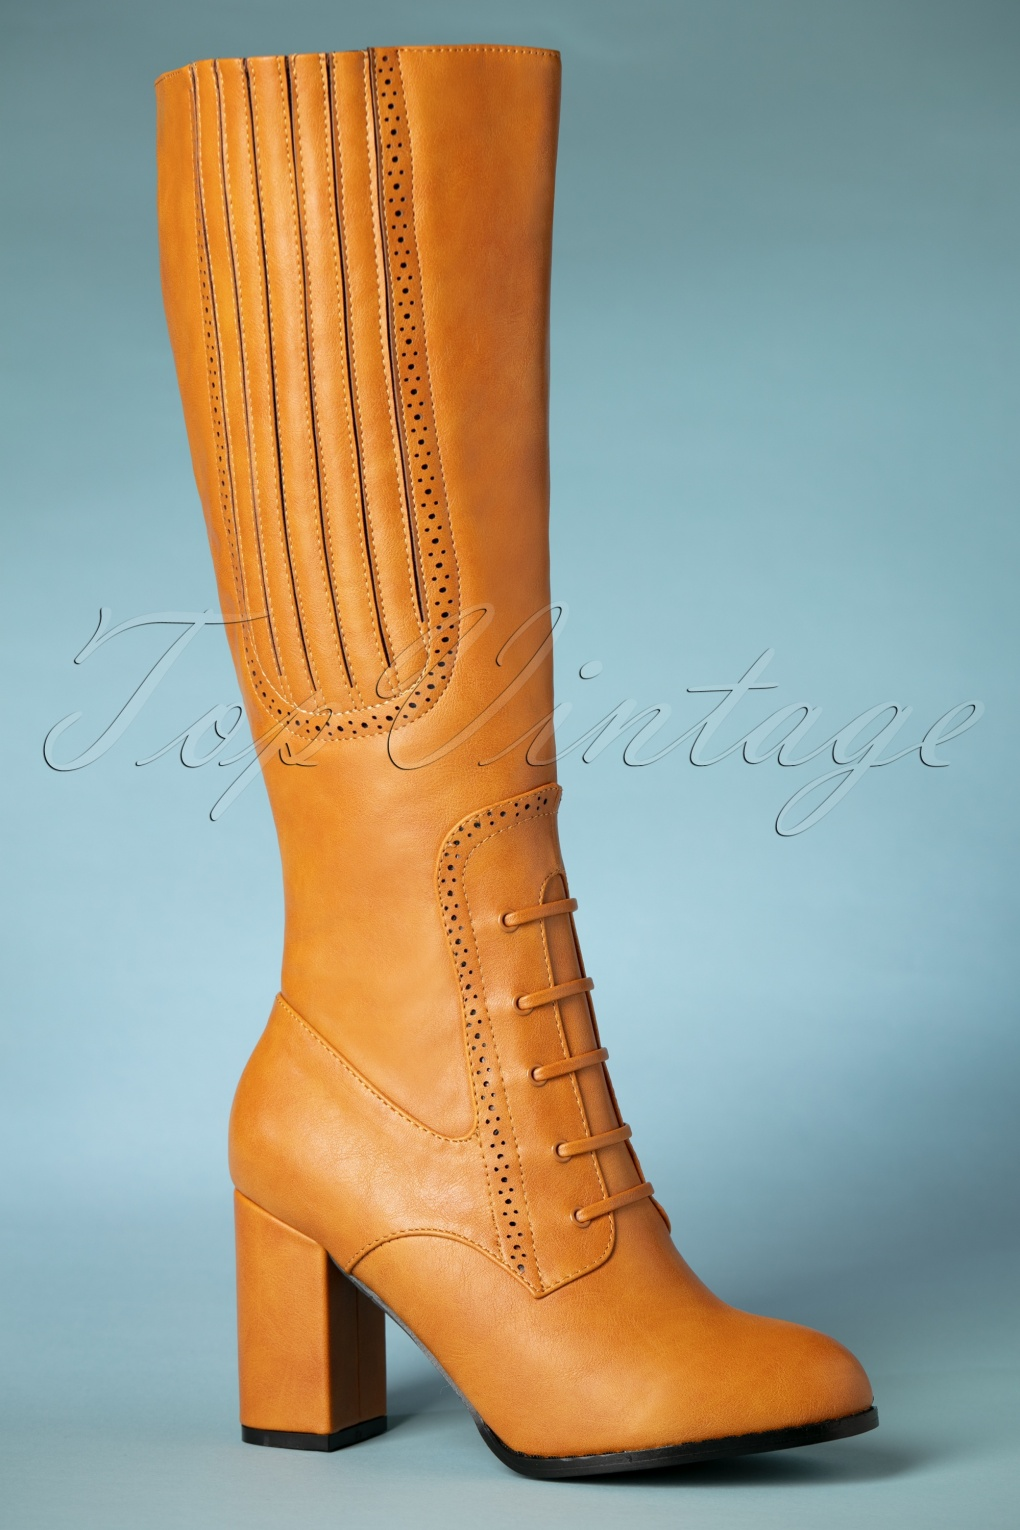 60s Shoes, Boots | 70s Shoes, Platforms, Boots 40s Roscoe Boots in Tan Light Brown £90.85 AT vintagedancer.com